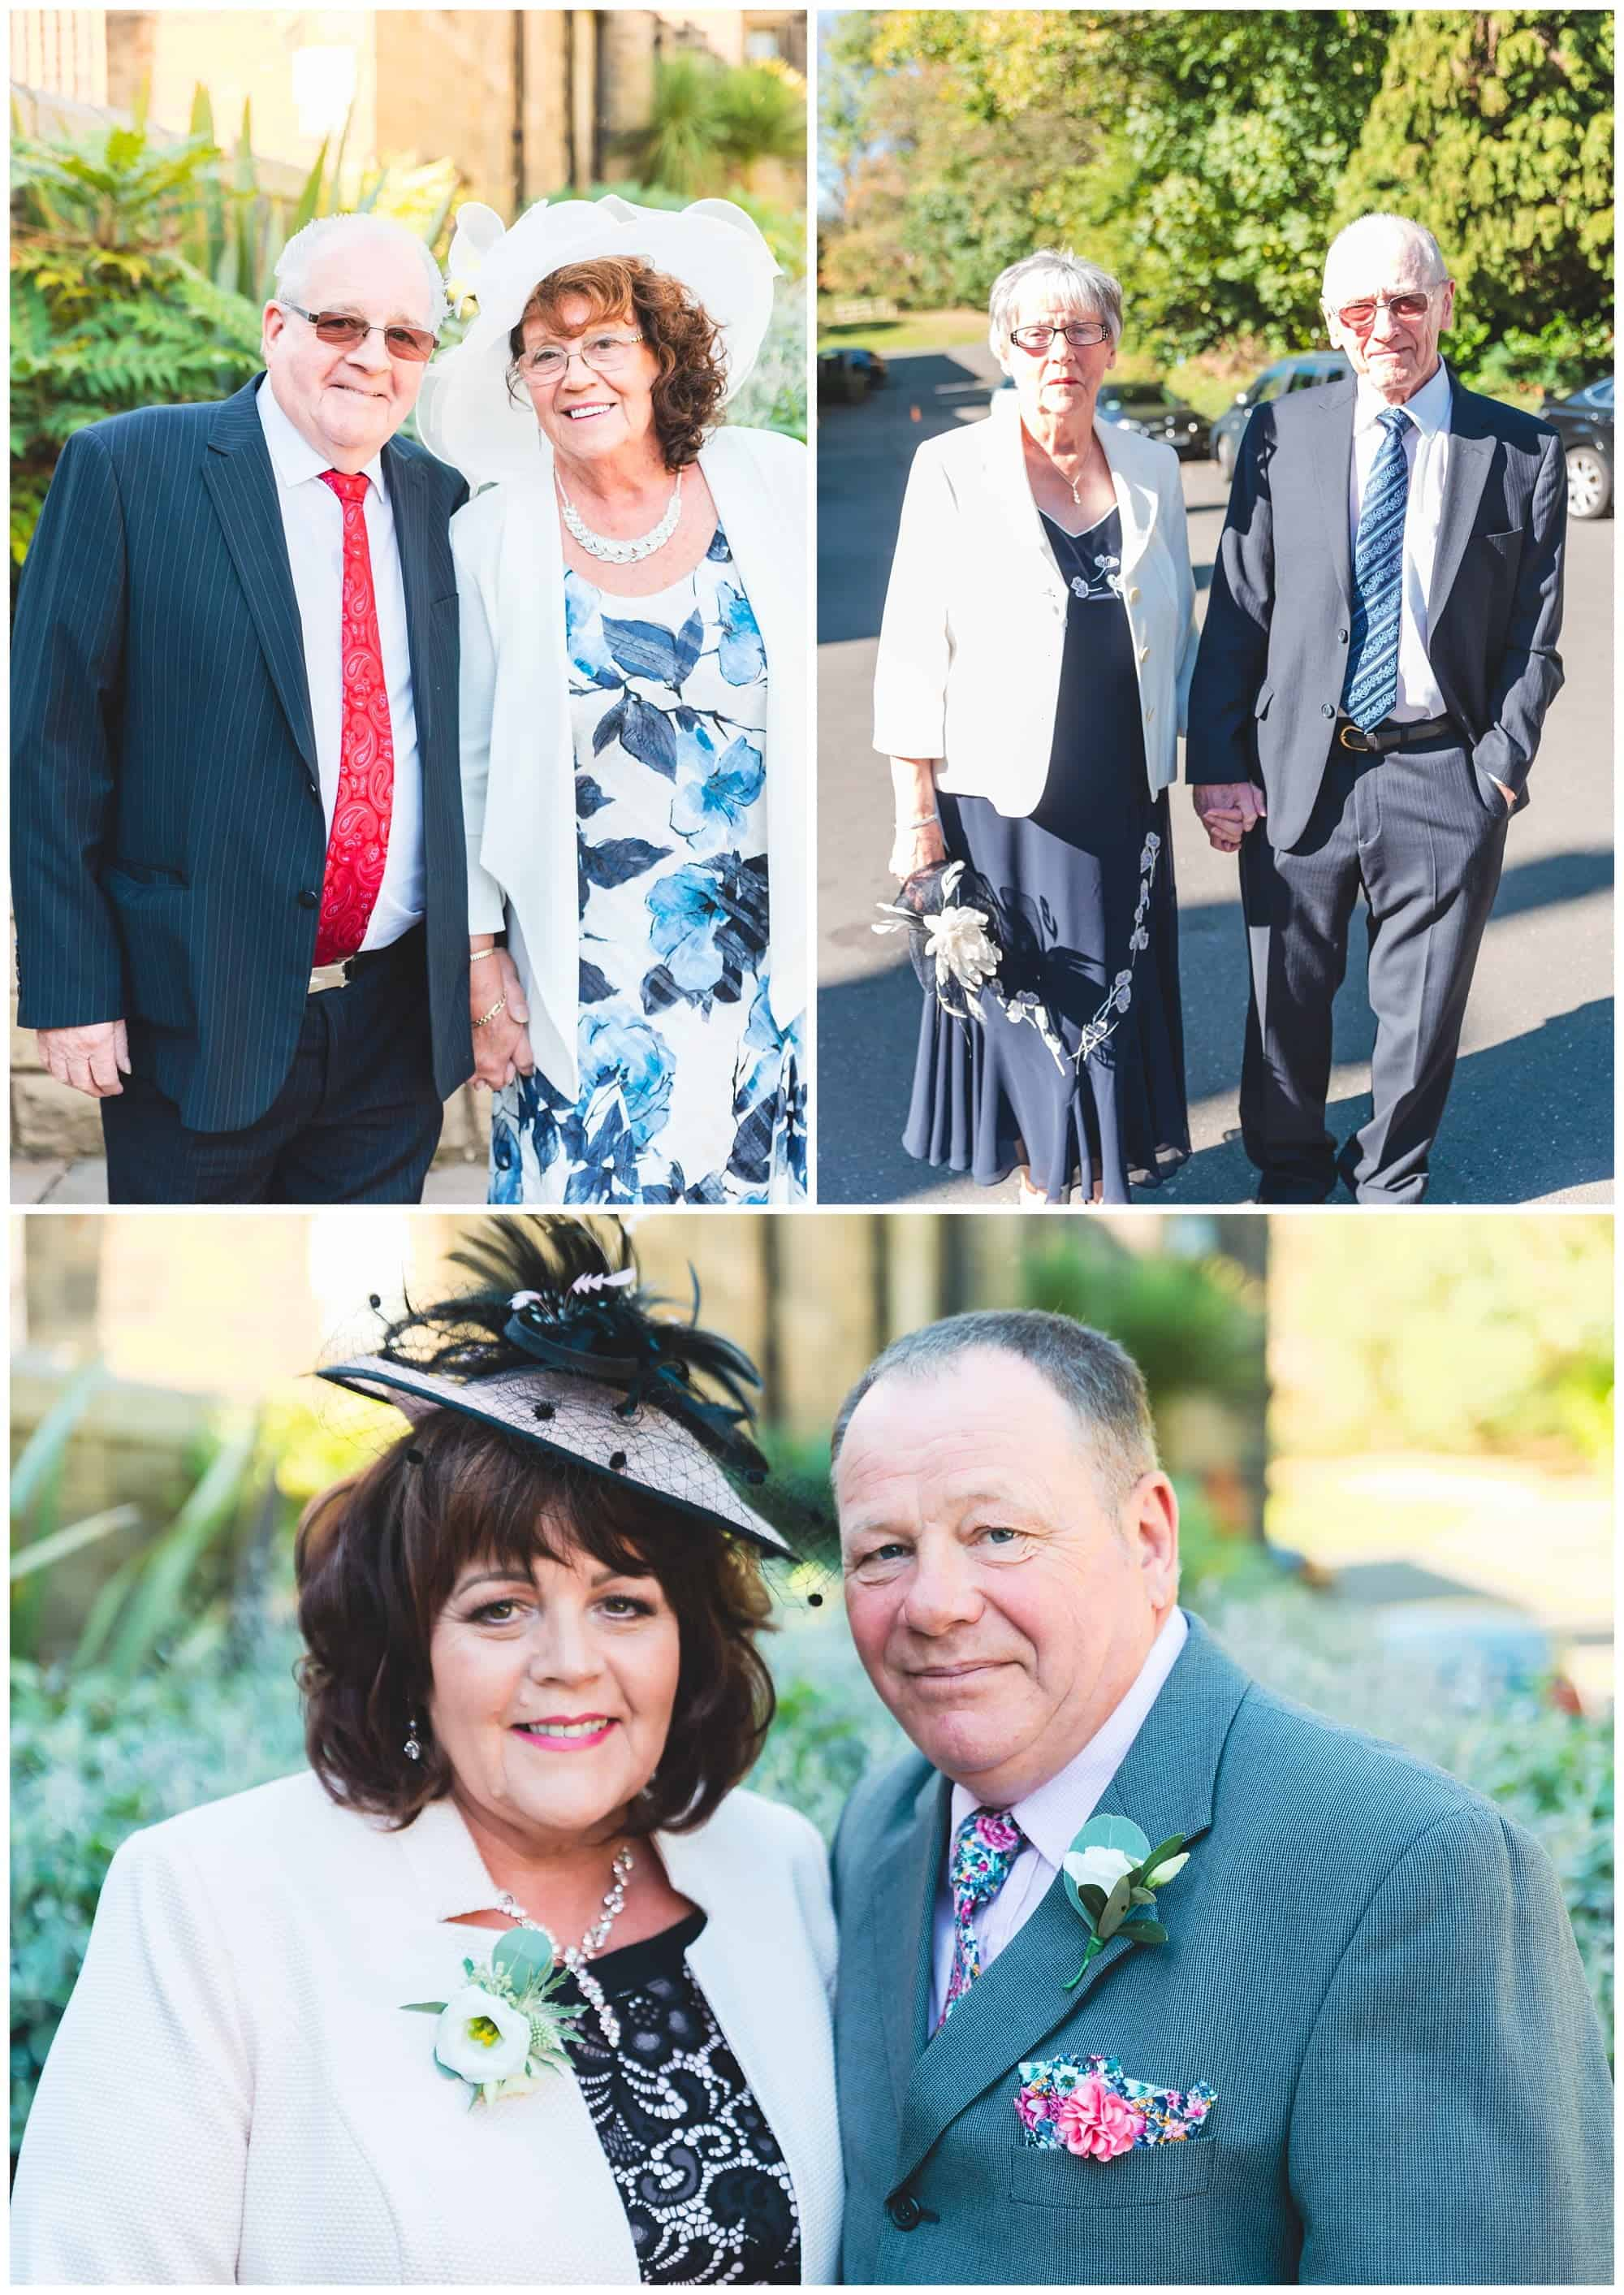 Whitley Hall Hotel Wedding - grooms and bride parents